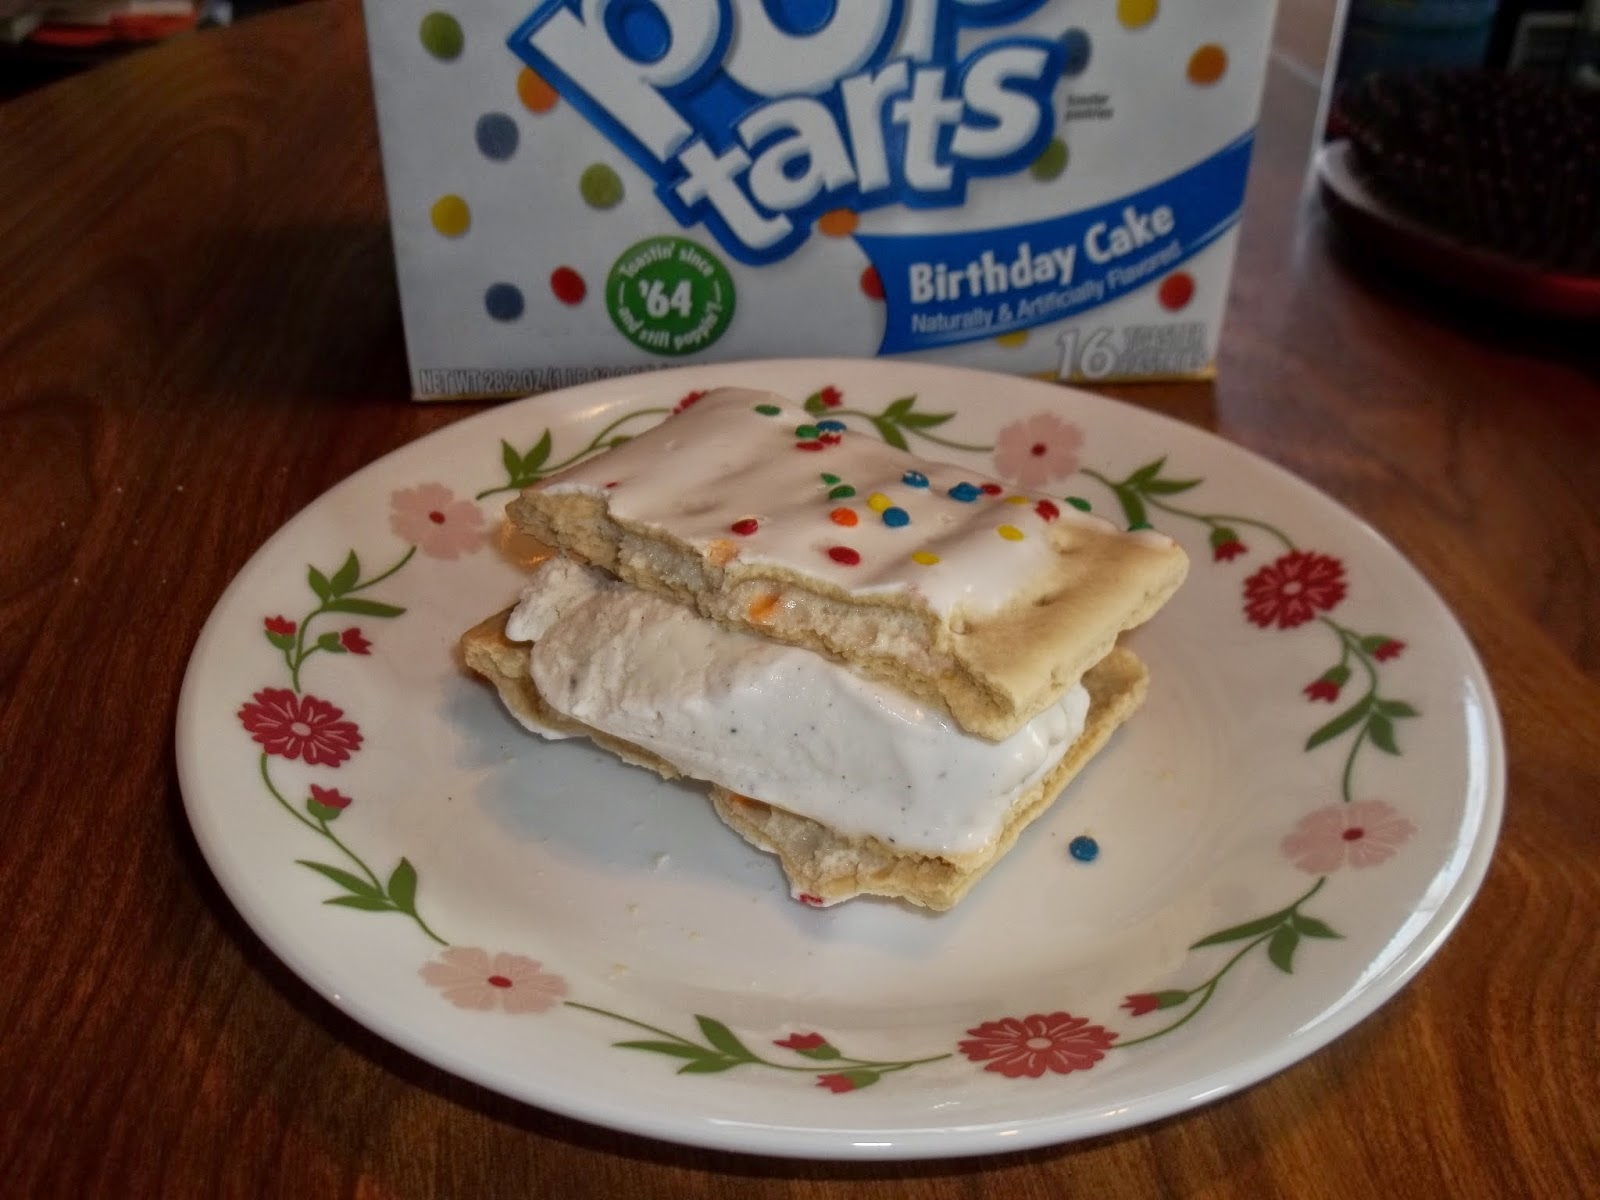 We Also Decided To Try Them Out As An Ice Cream Sandwich Using Vanilla Between The Two Halves Of A Birthday Cake Pop Tart See Photo Above